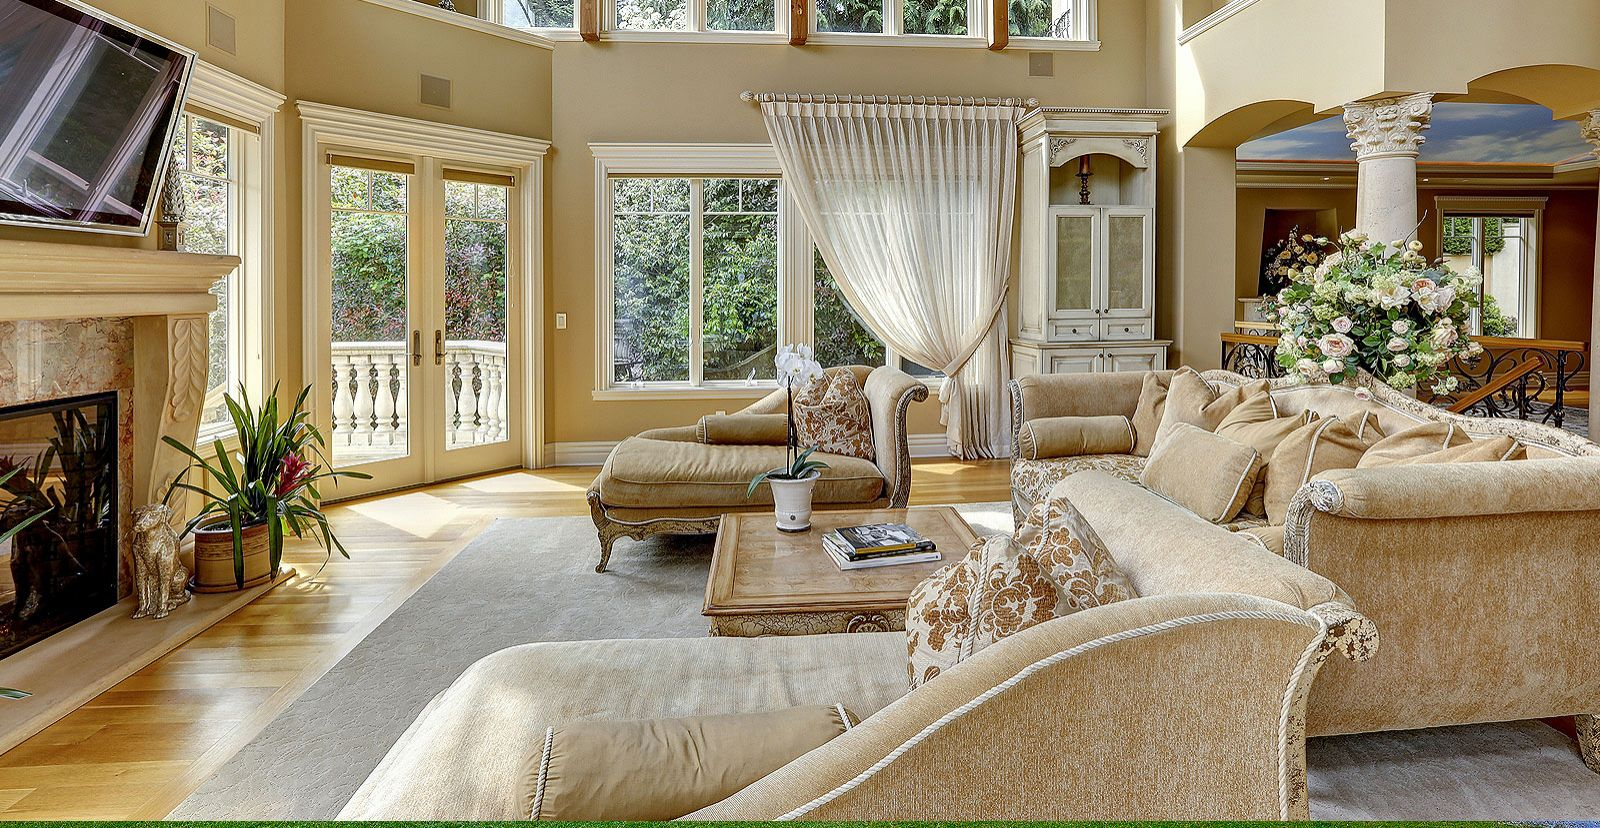 Living Room - Jenna D'Amico